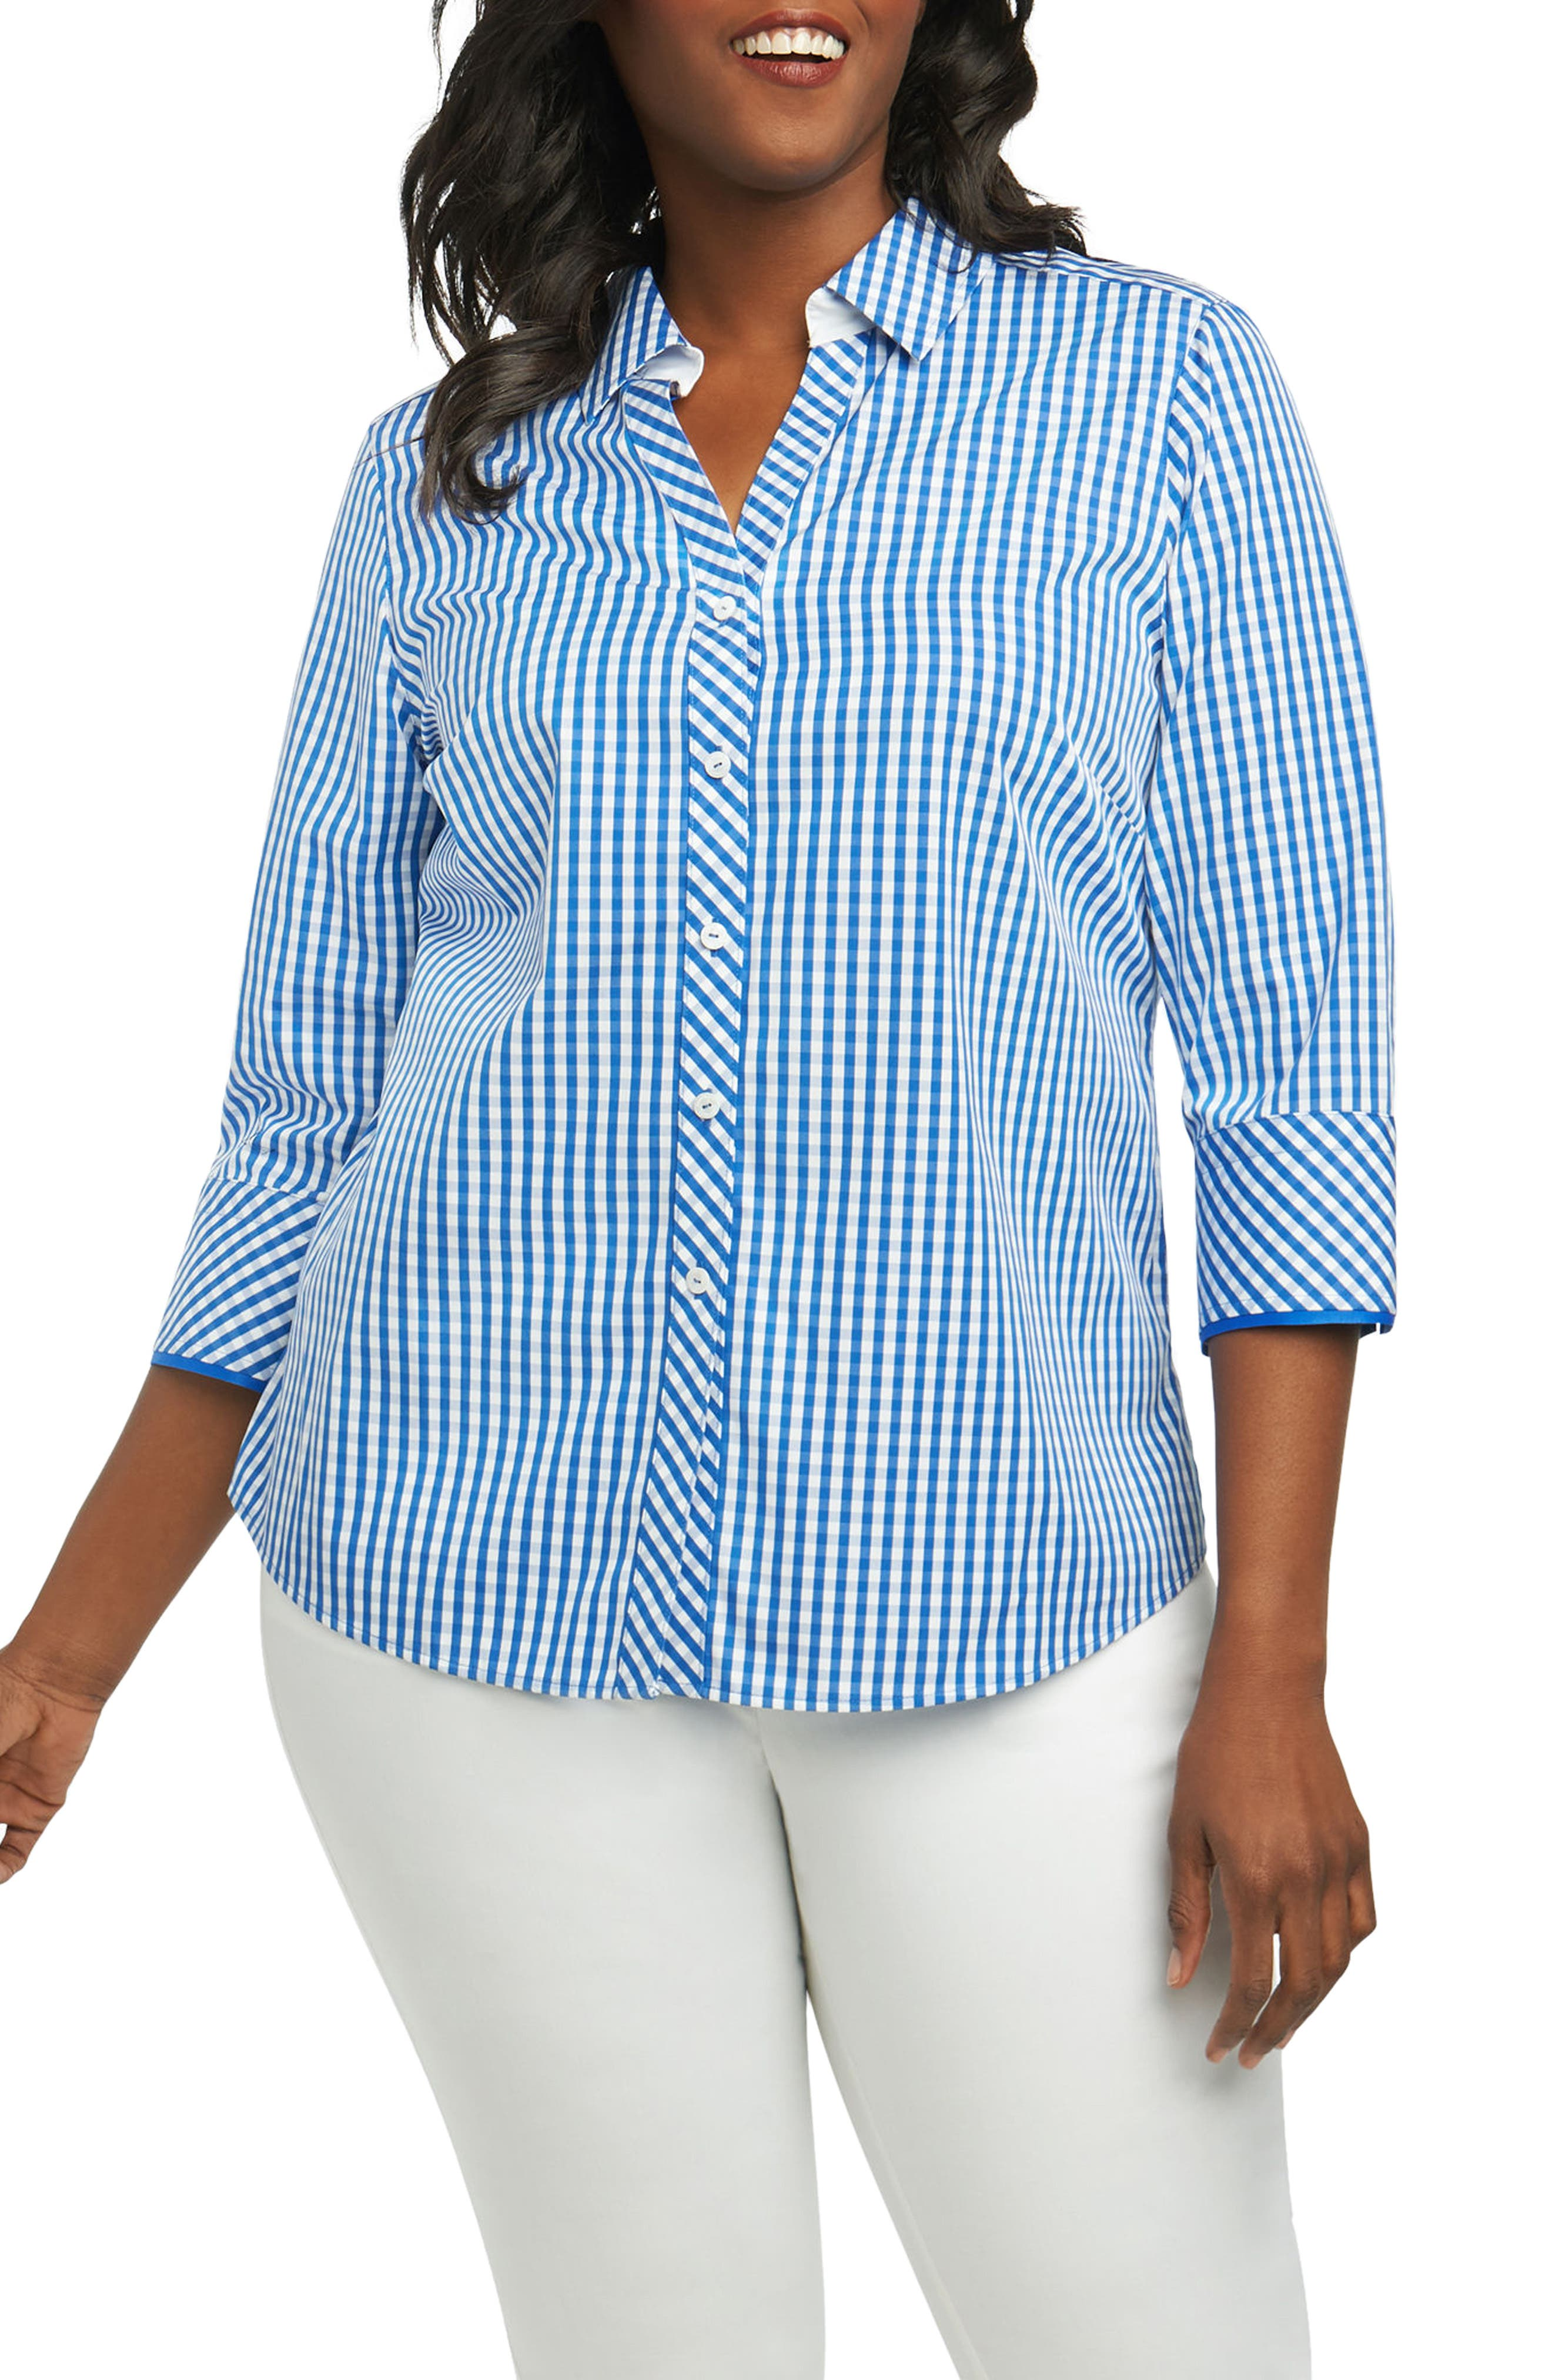 Mary Gingham Wrinkle Free Shirt,                         Main,                         color, Lapis Blue